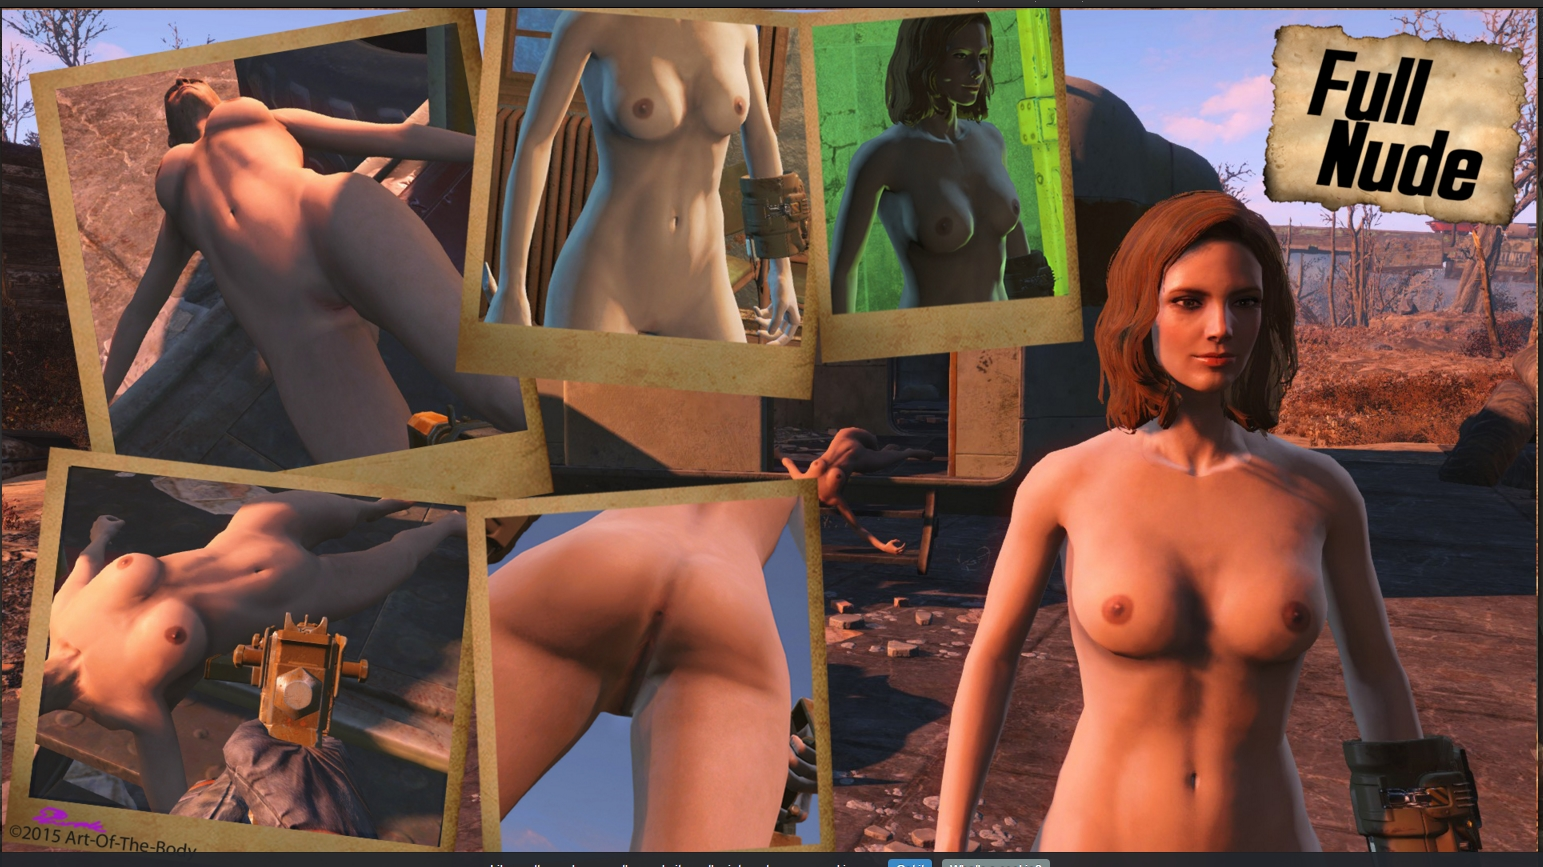 The sims 3 sperm cum mod sexy photos